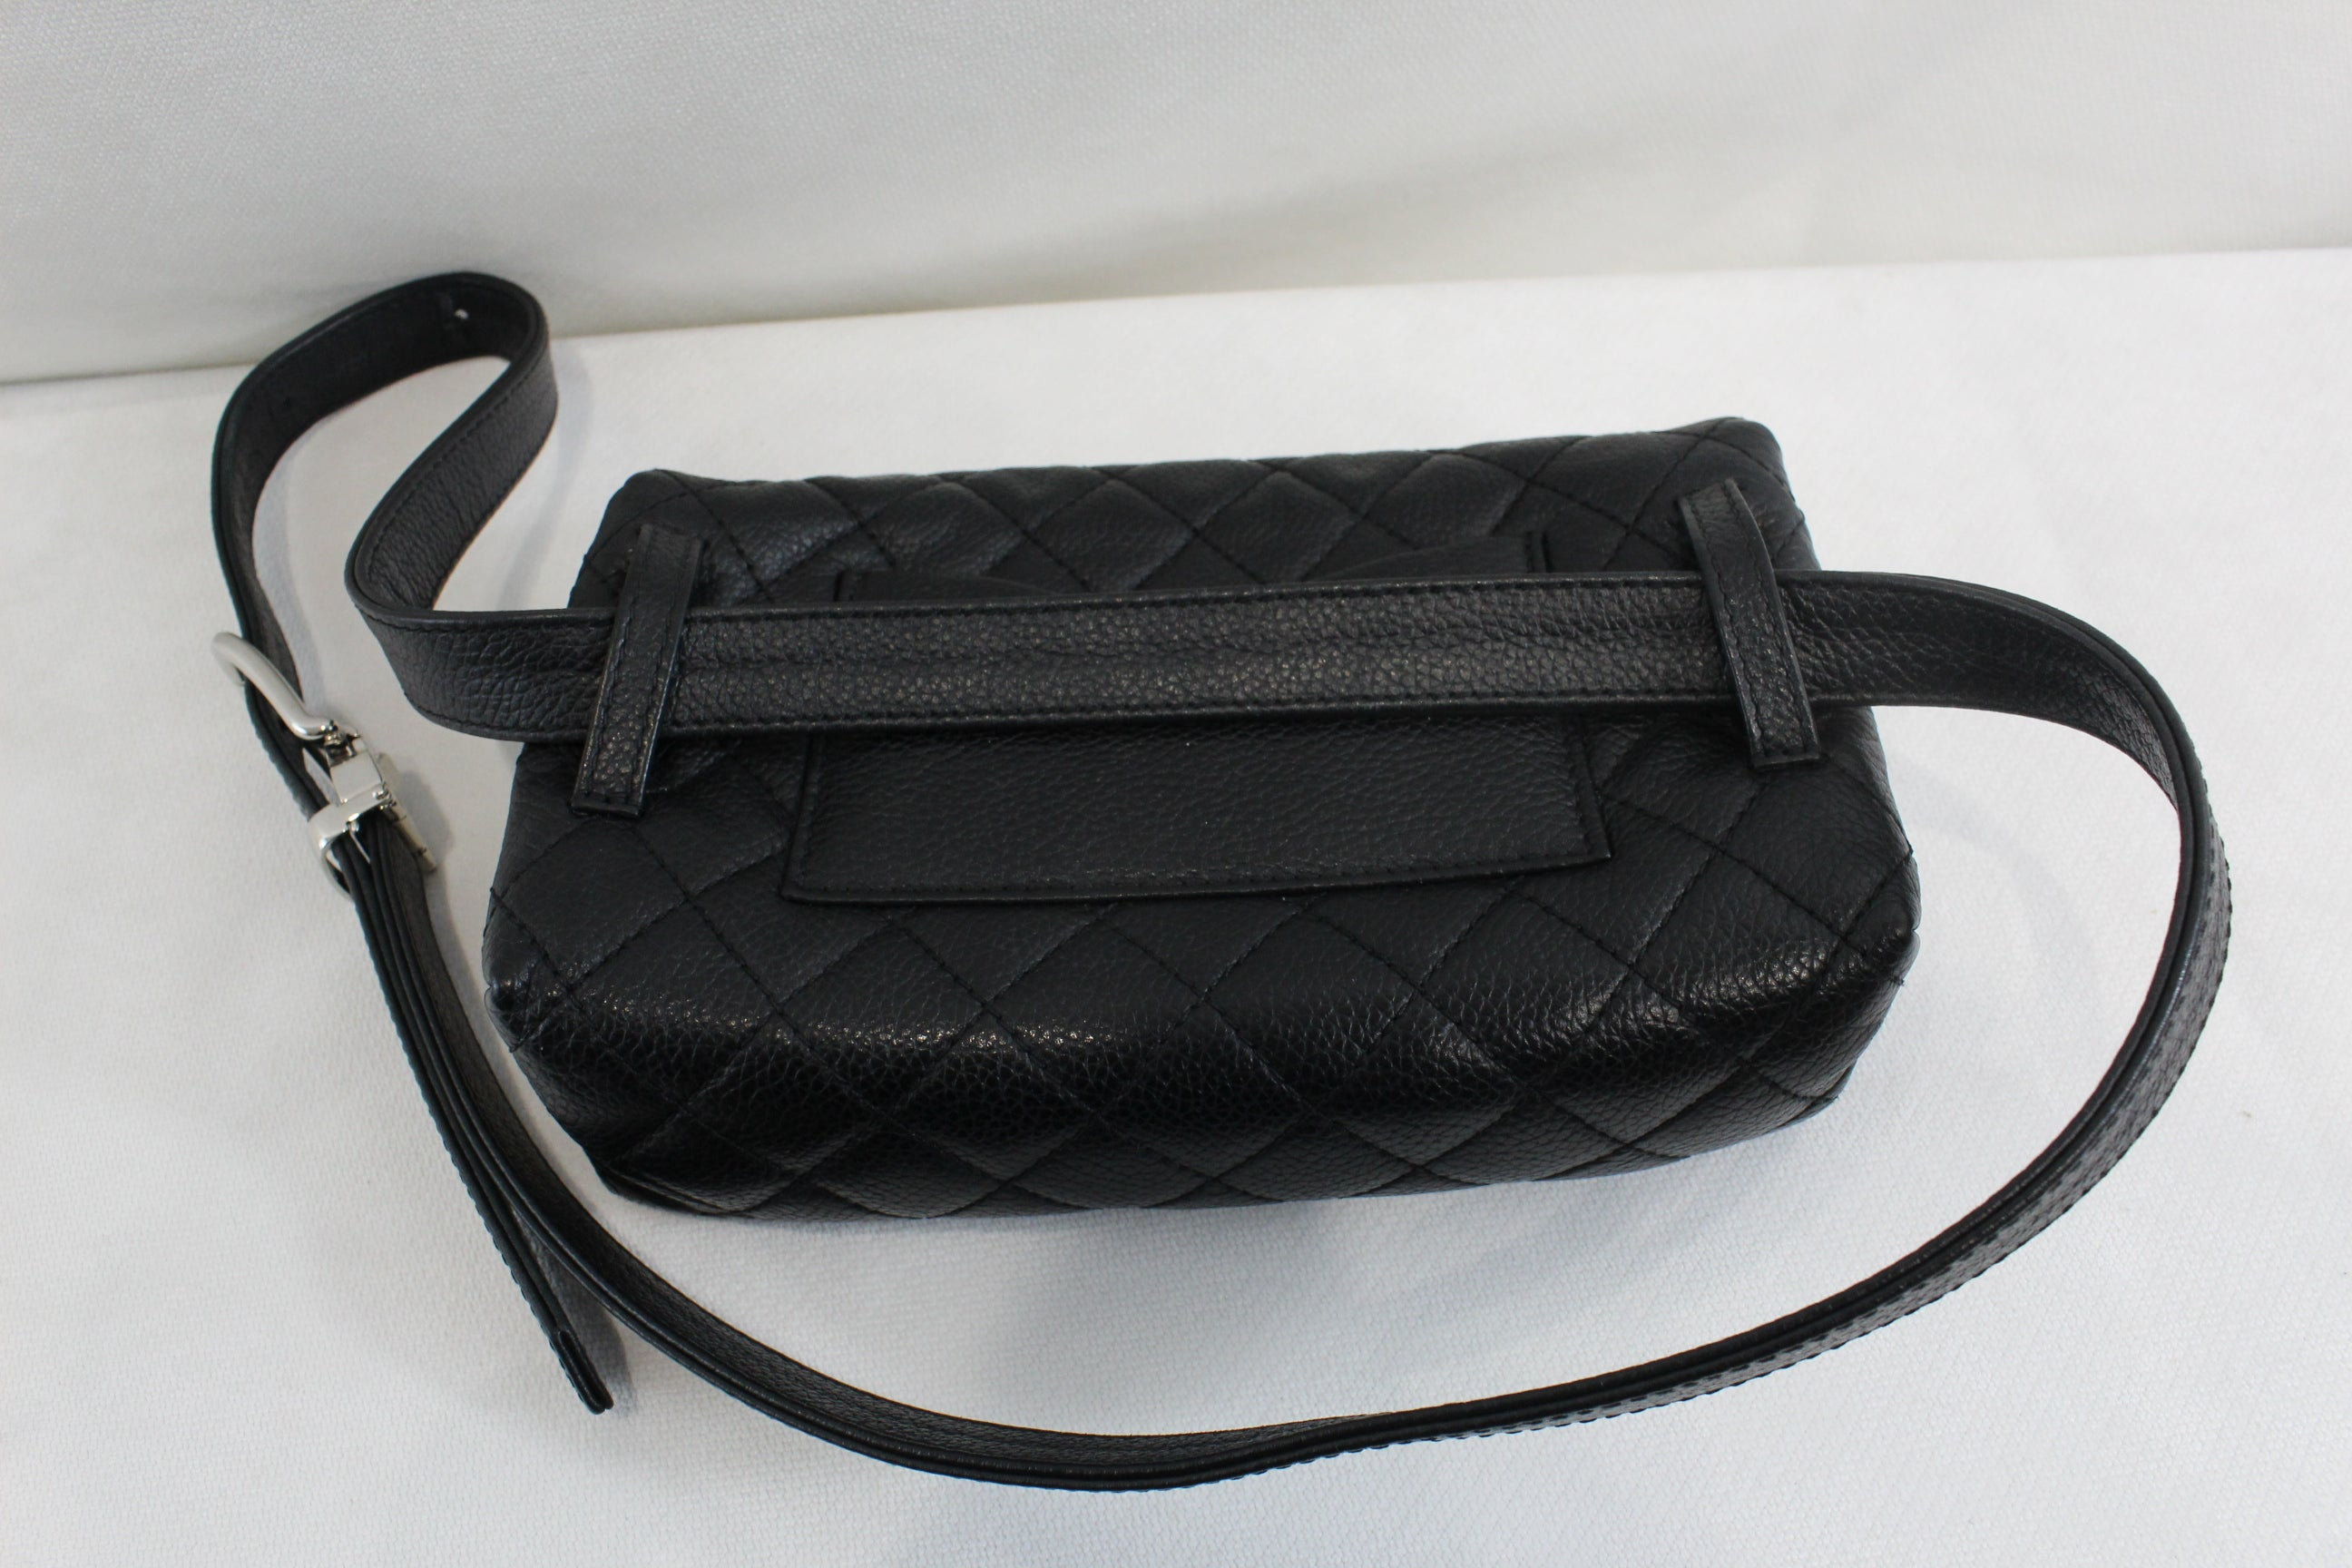 6a20e7ccfcdb61 Chanel Uniform Belt Bag in Black Caviar Leather at 1stdibs